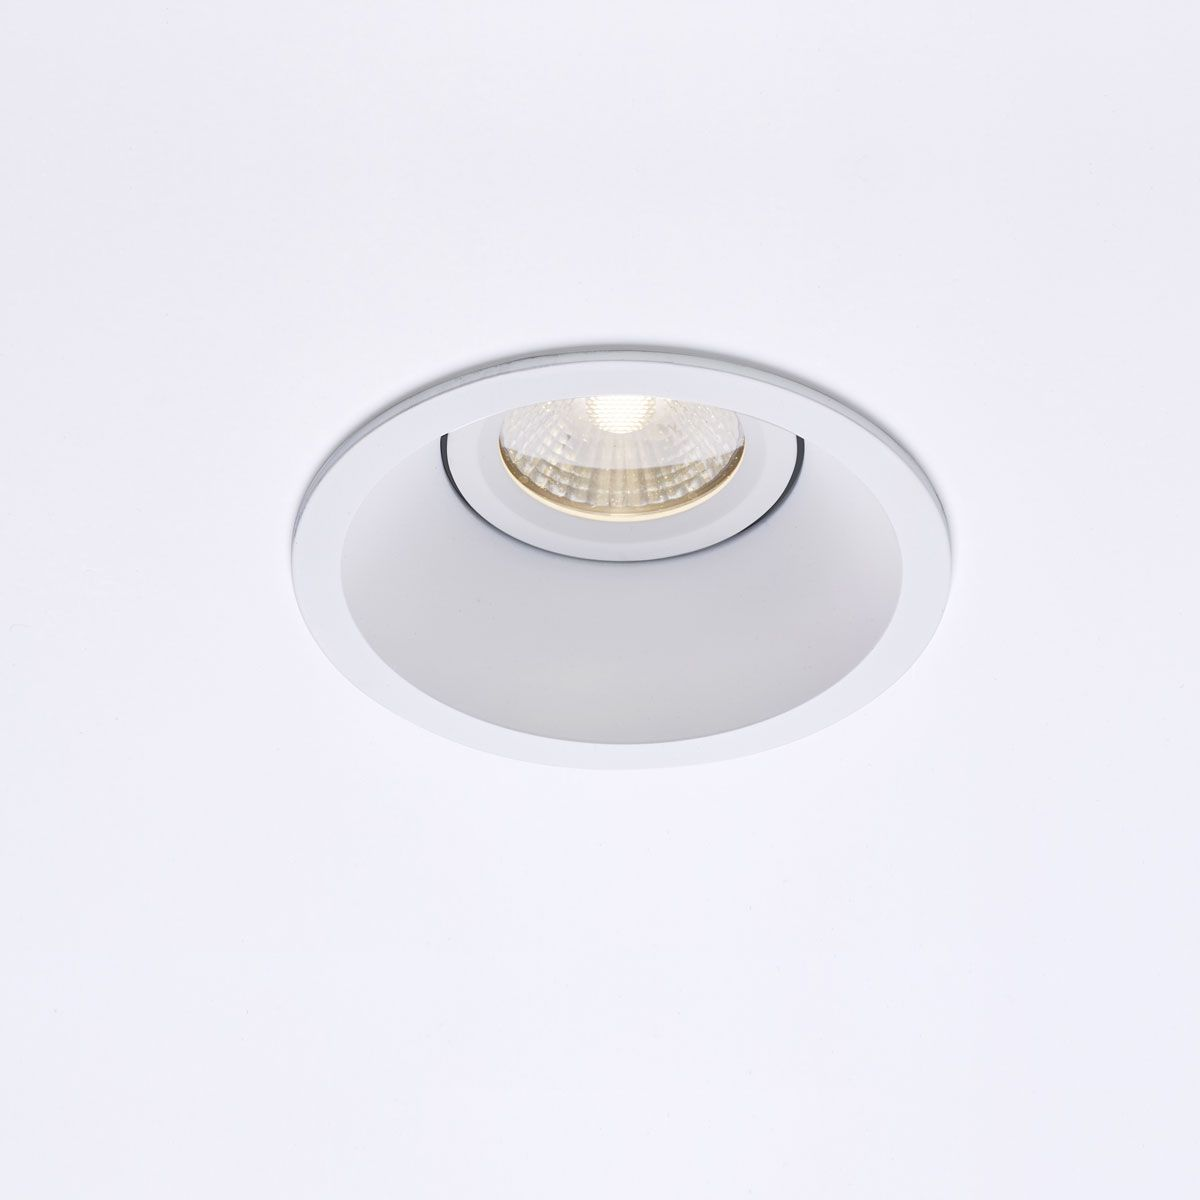 Led Spots Aansluiten Hoop Deep Edge 104 White 0002 1200x1200 Lighting In 2019